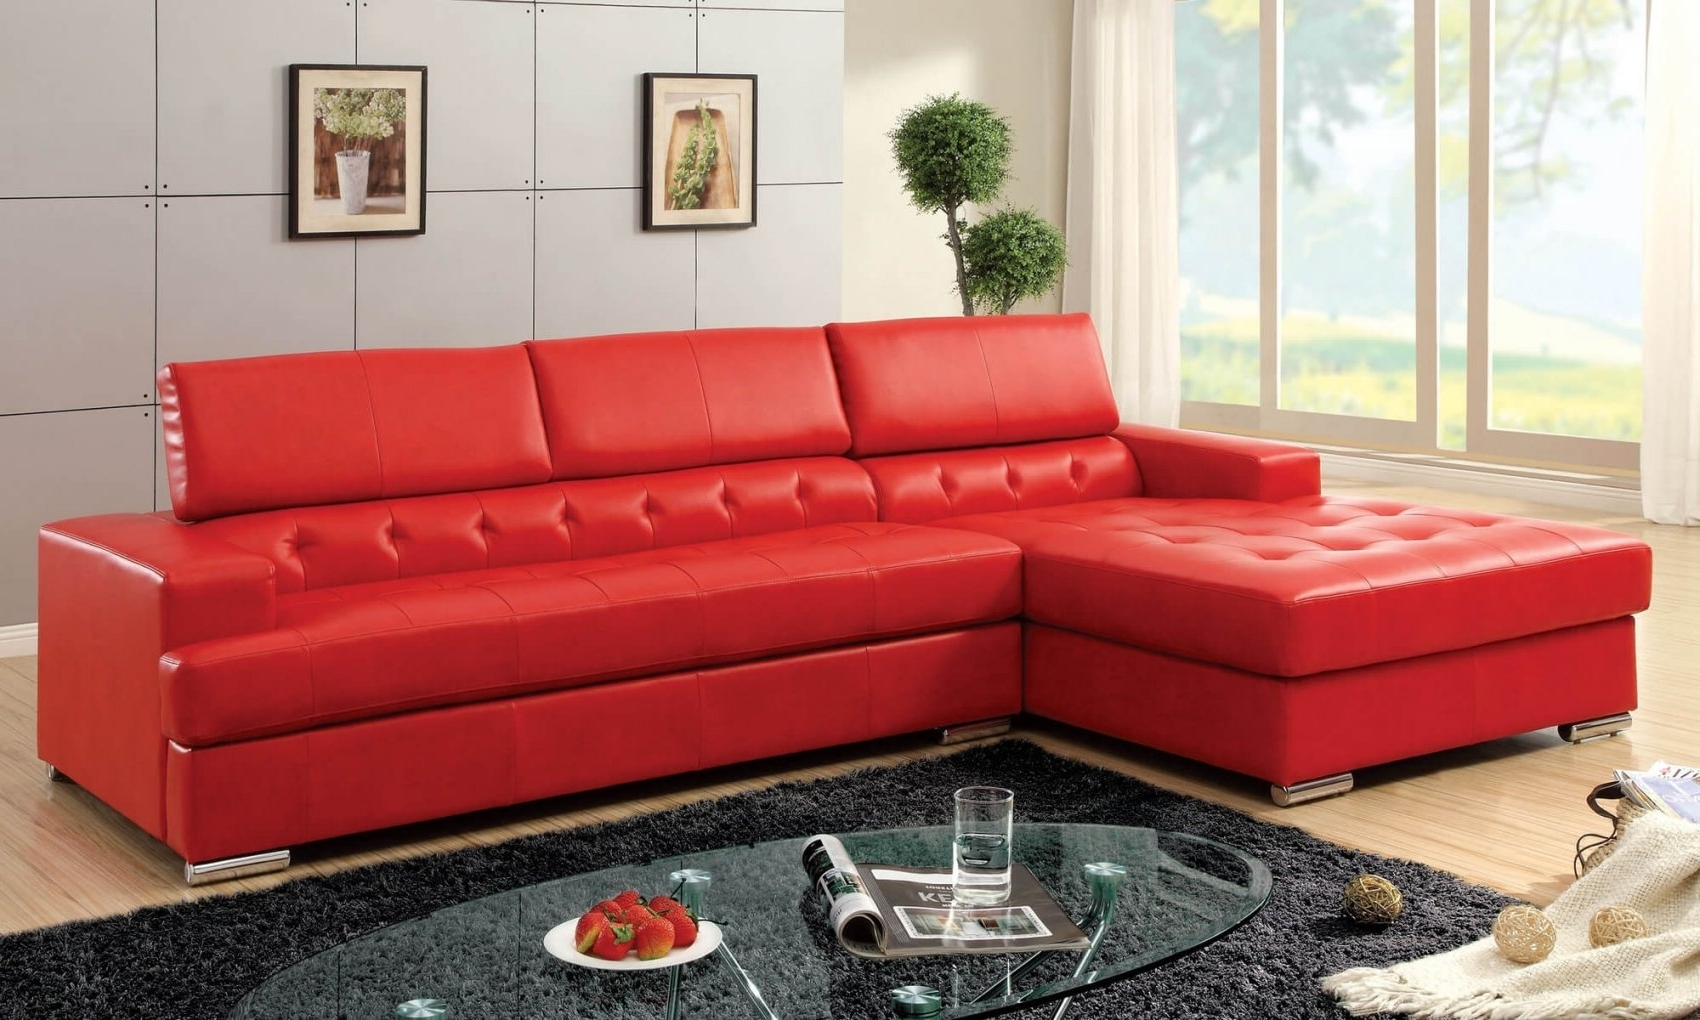 Red Leather Sectional Sofa Contemporary – Best Sectional In Regarding Best And Newest Red Leather Sectional Sofas With Ottoman (View 6 of 15)